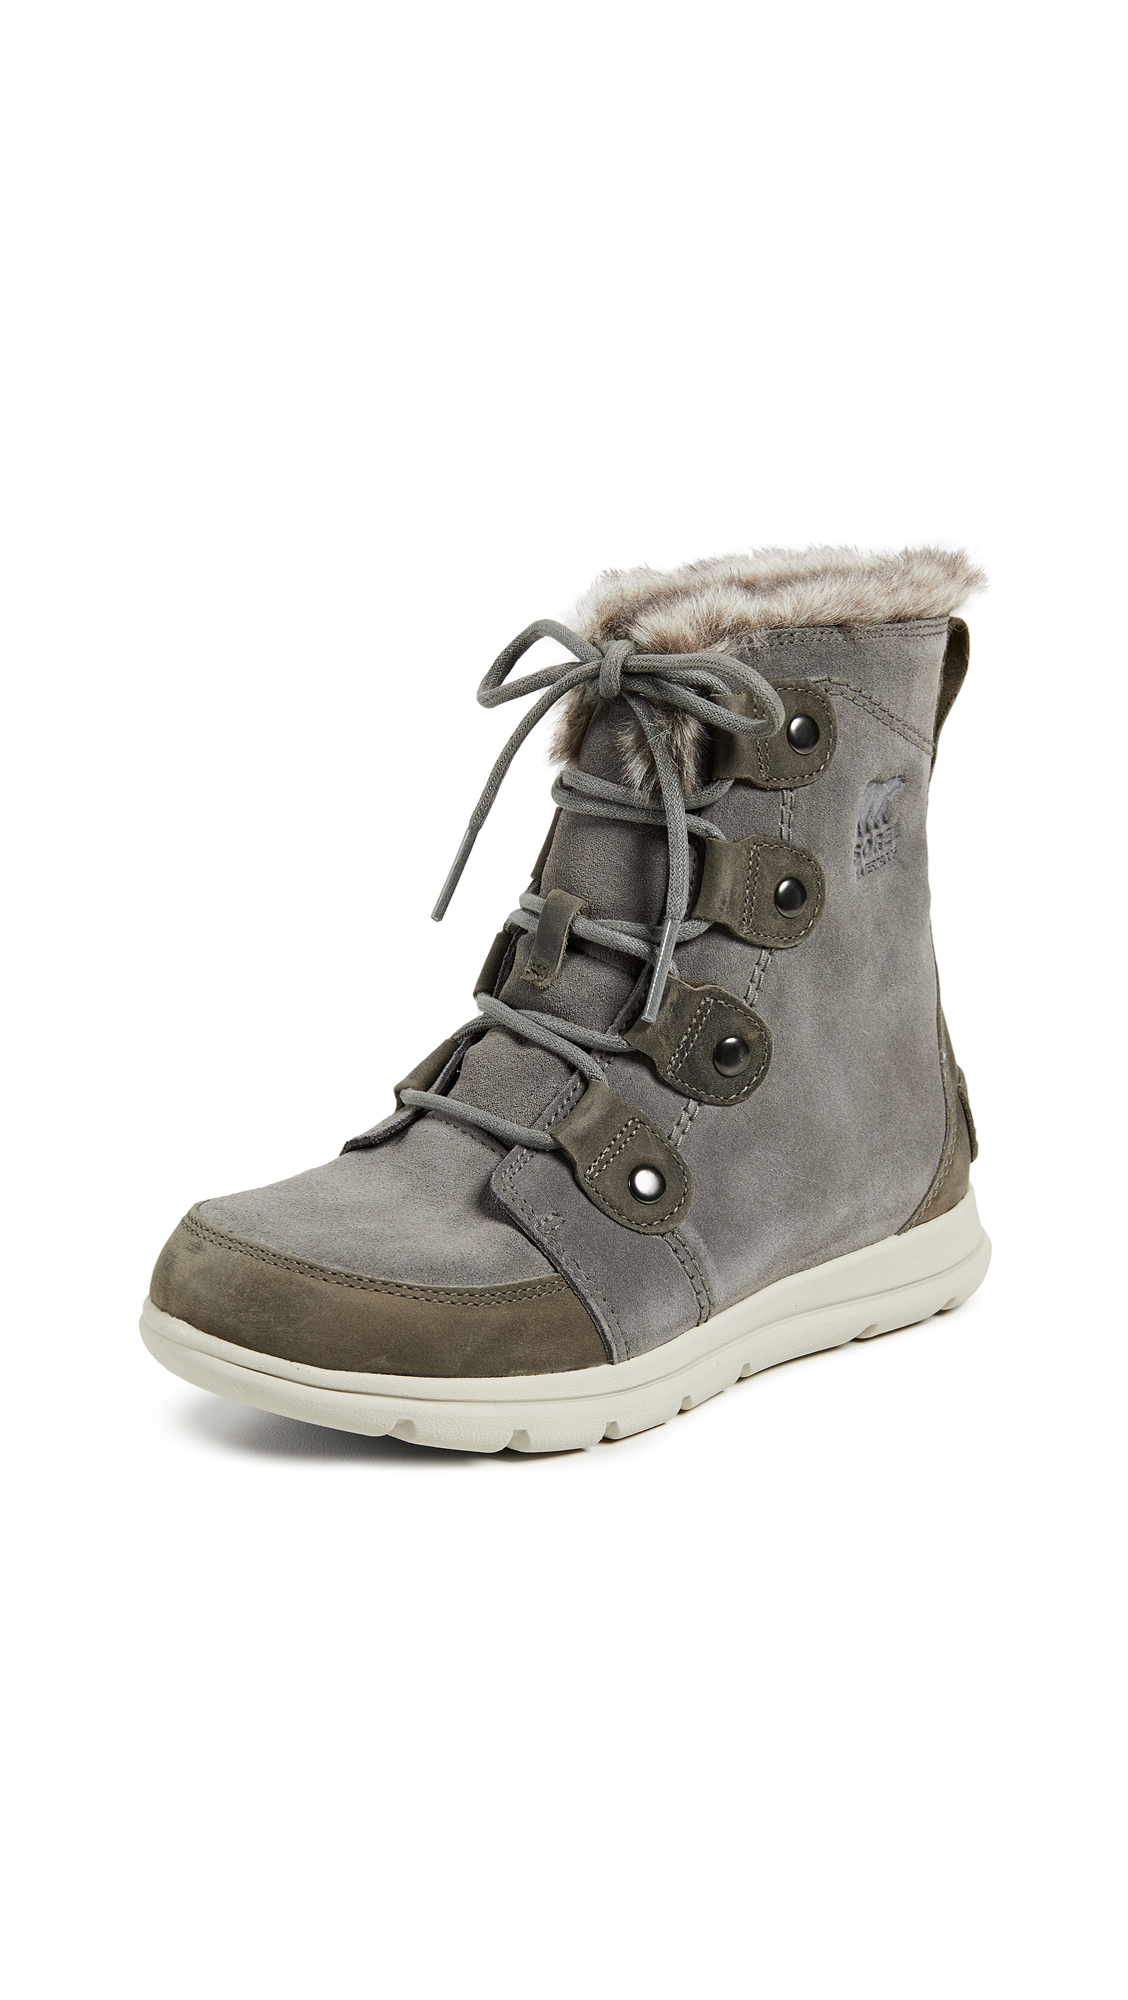 Sorel Sorel Explorer Joan Boots - Quarry/Black